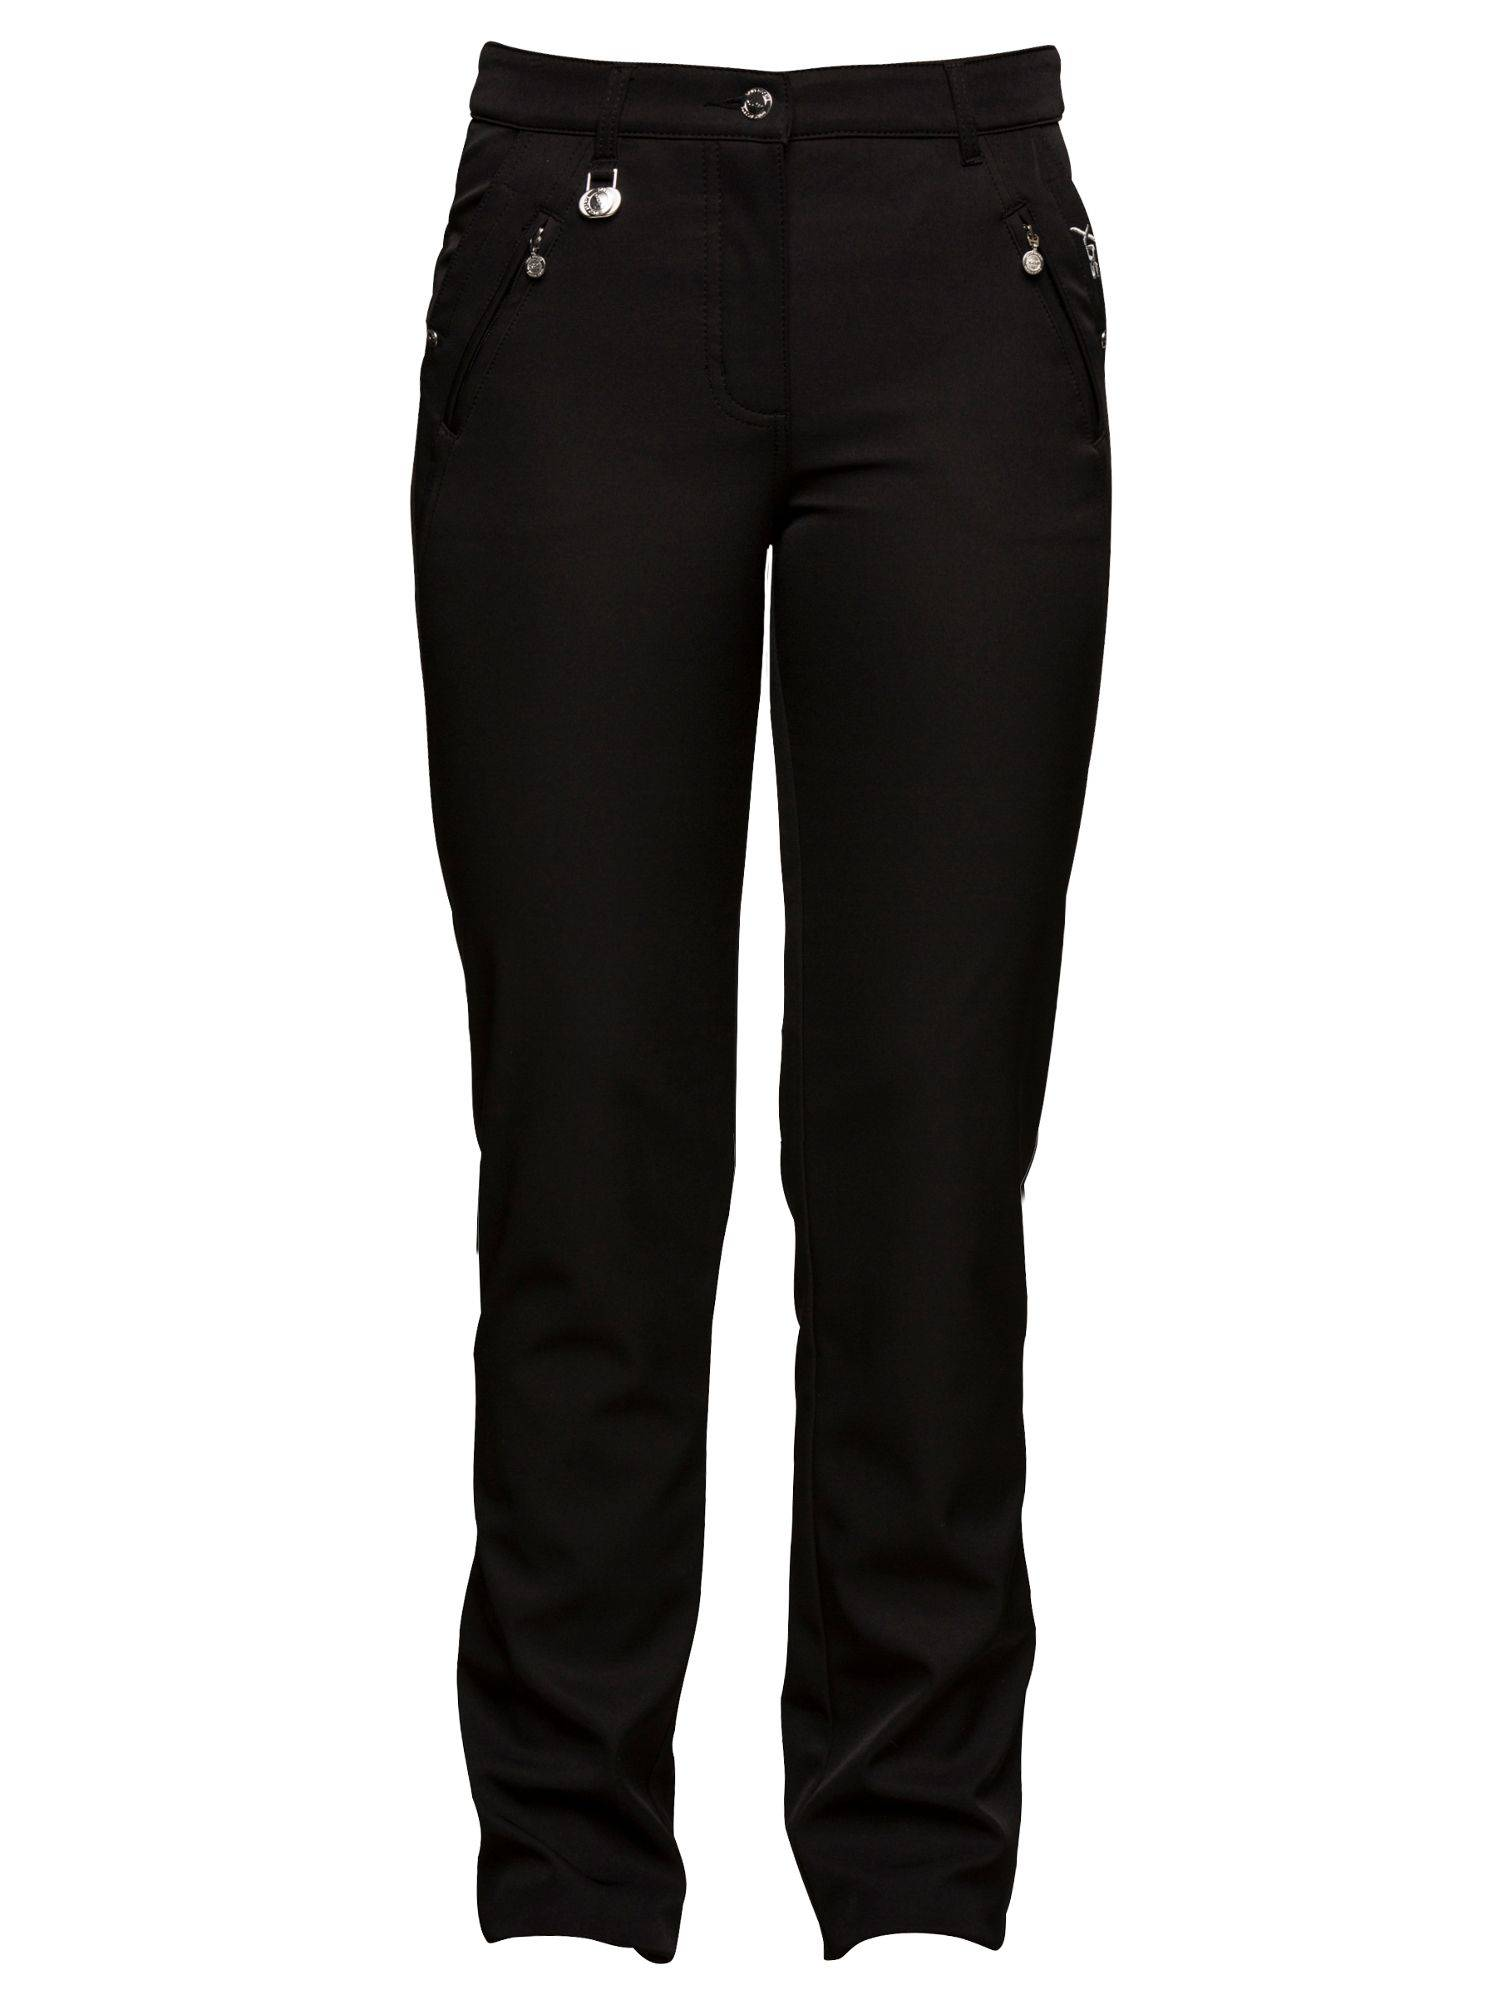 Daily Sports Irene Trousers (14L)